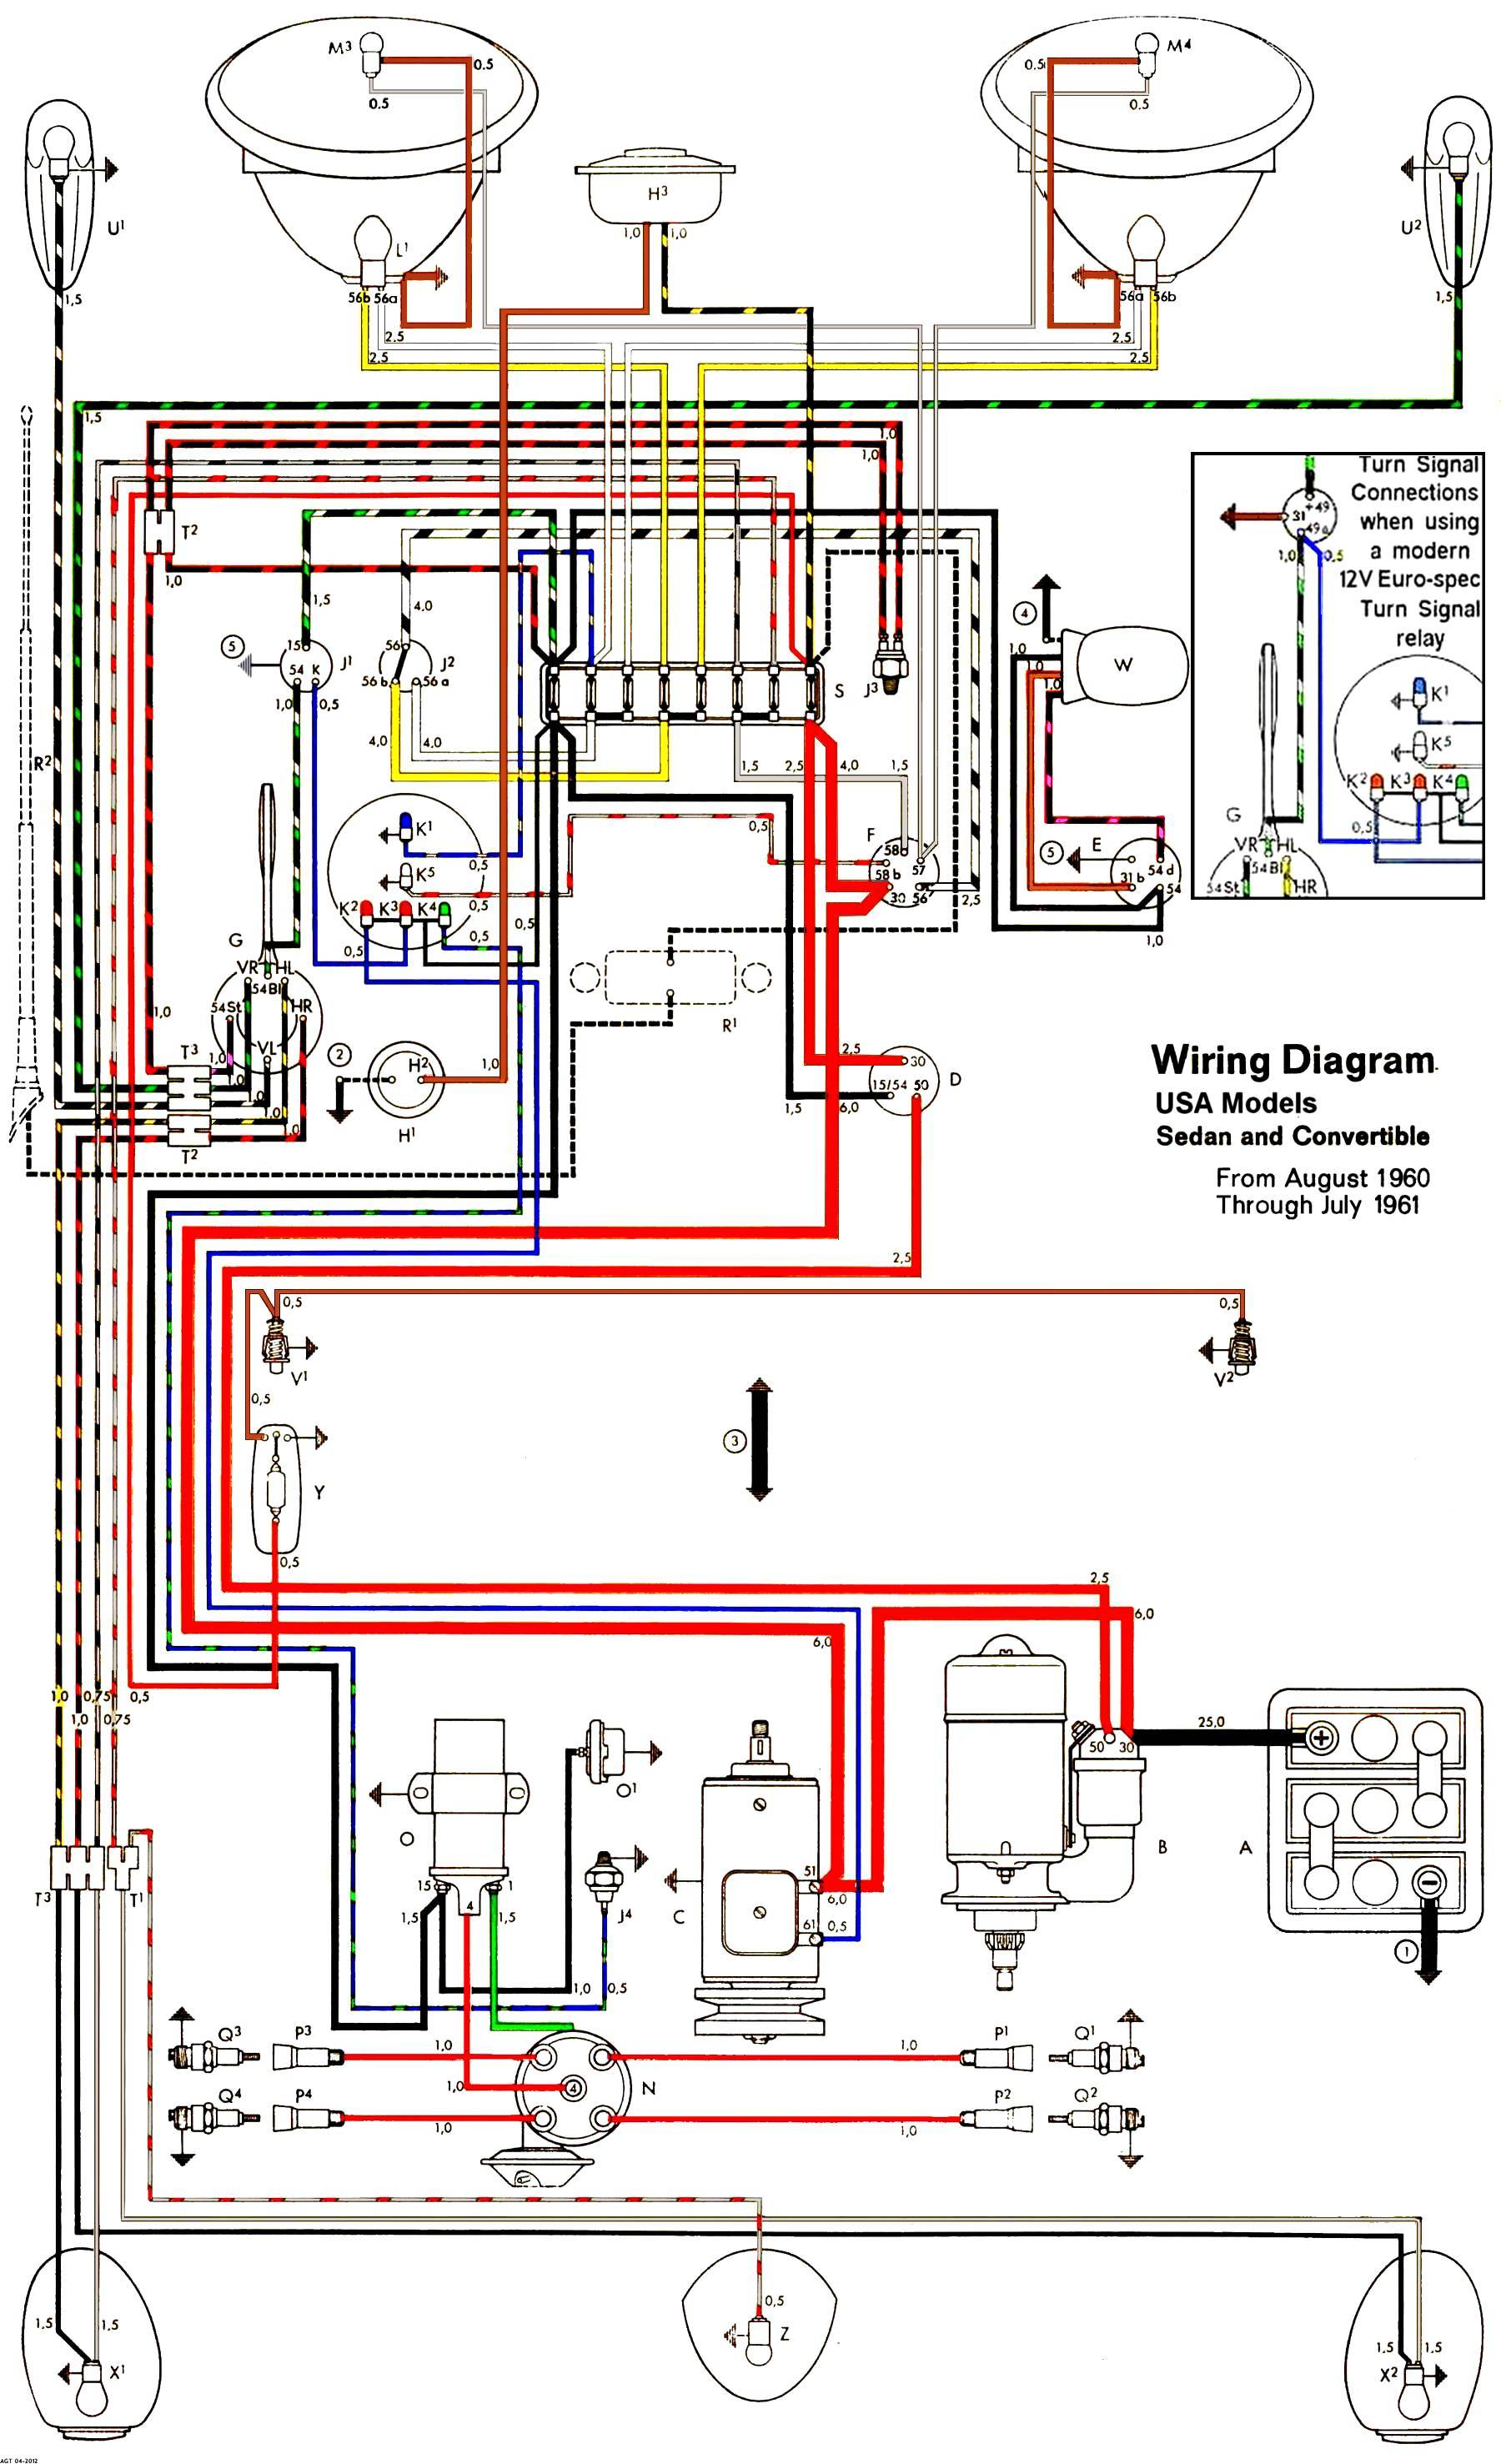 Type 1 Wiring Diagrams Wire Diagram 12v Cigarette